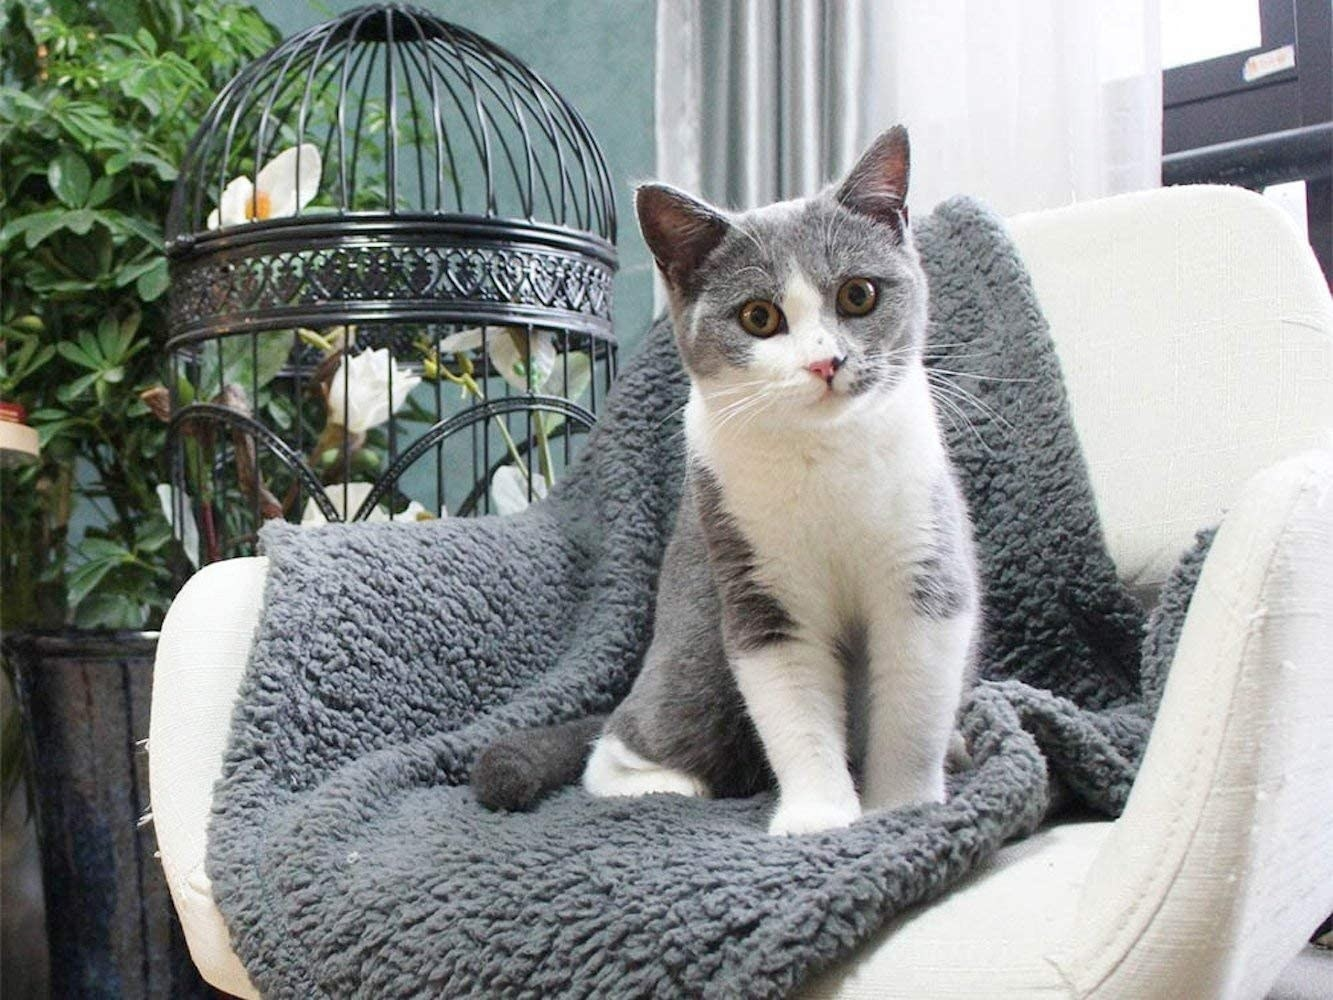 A grey and white cat sitting on a fleece pet blanket